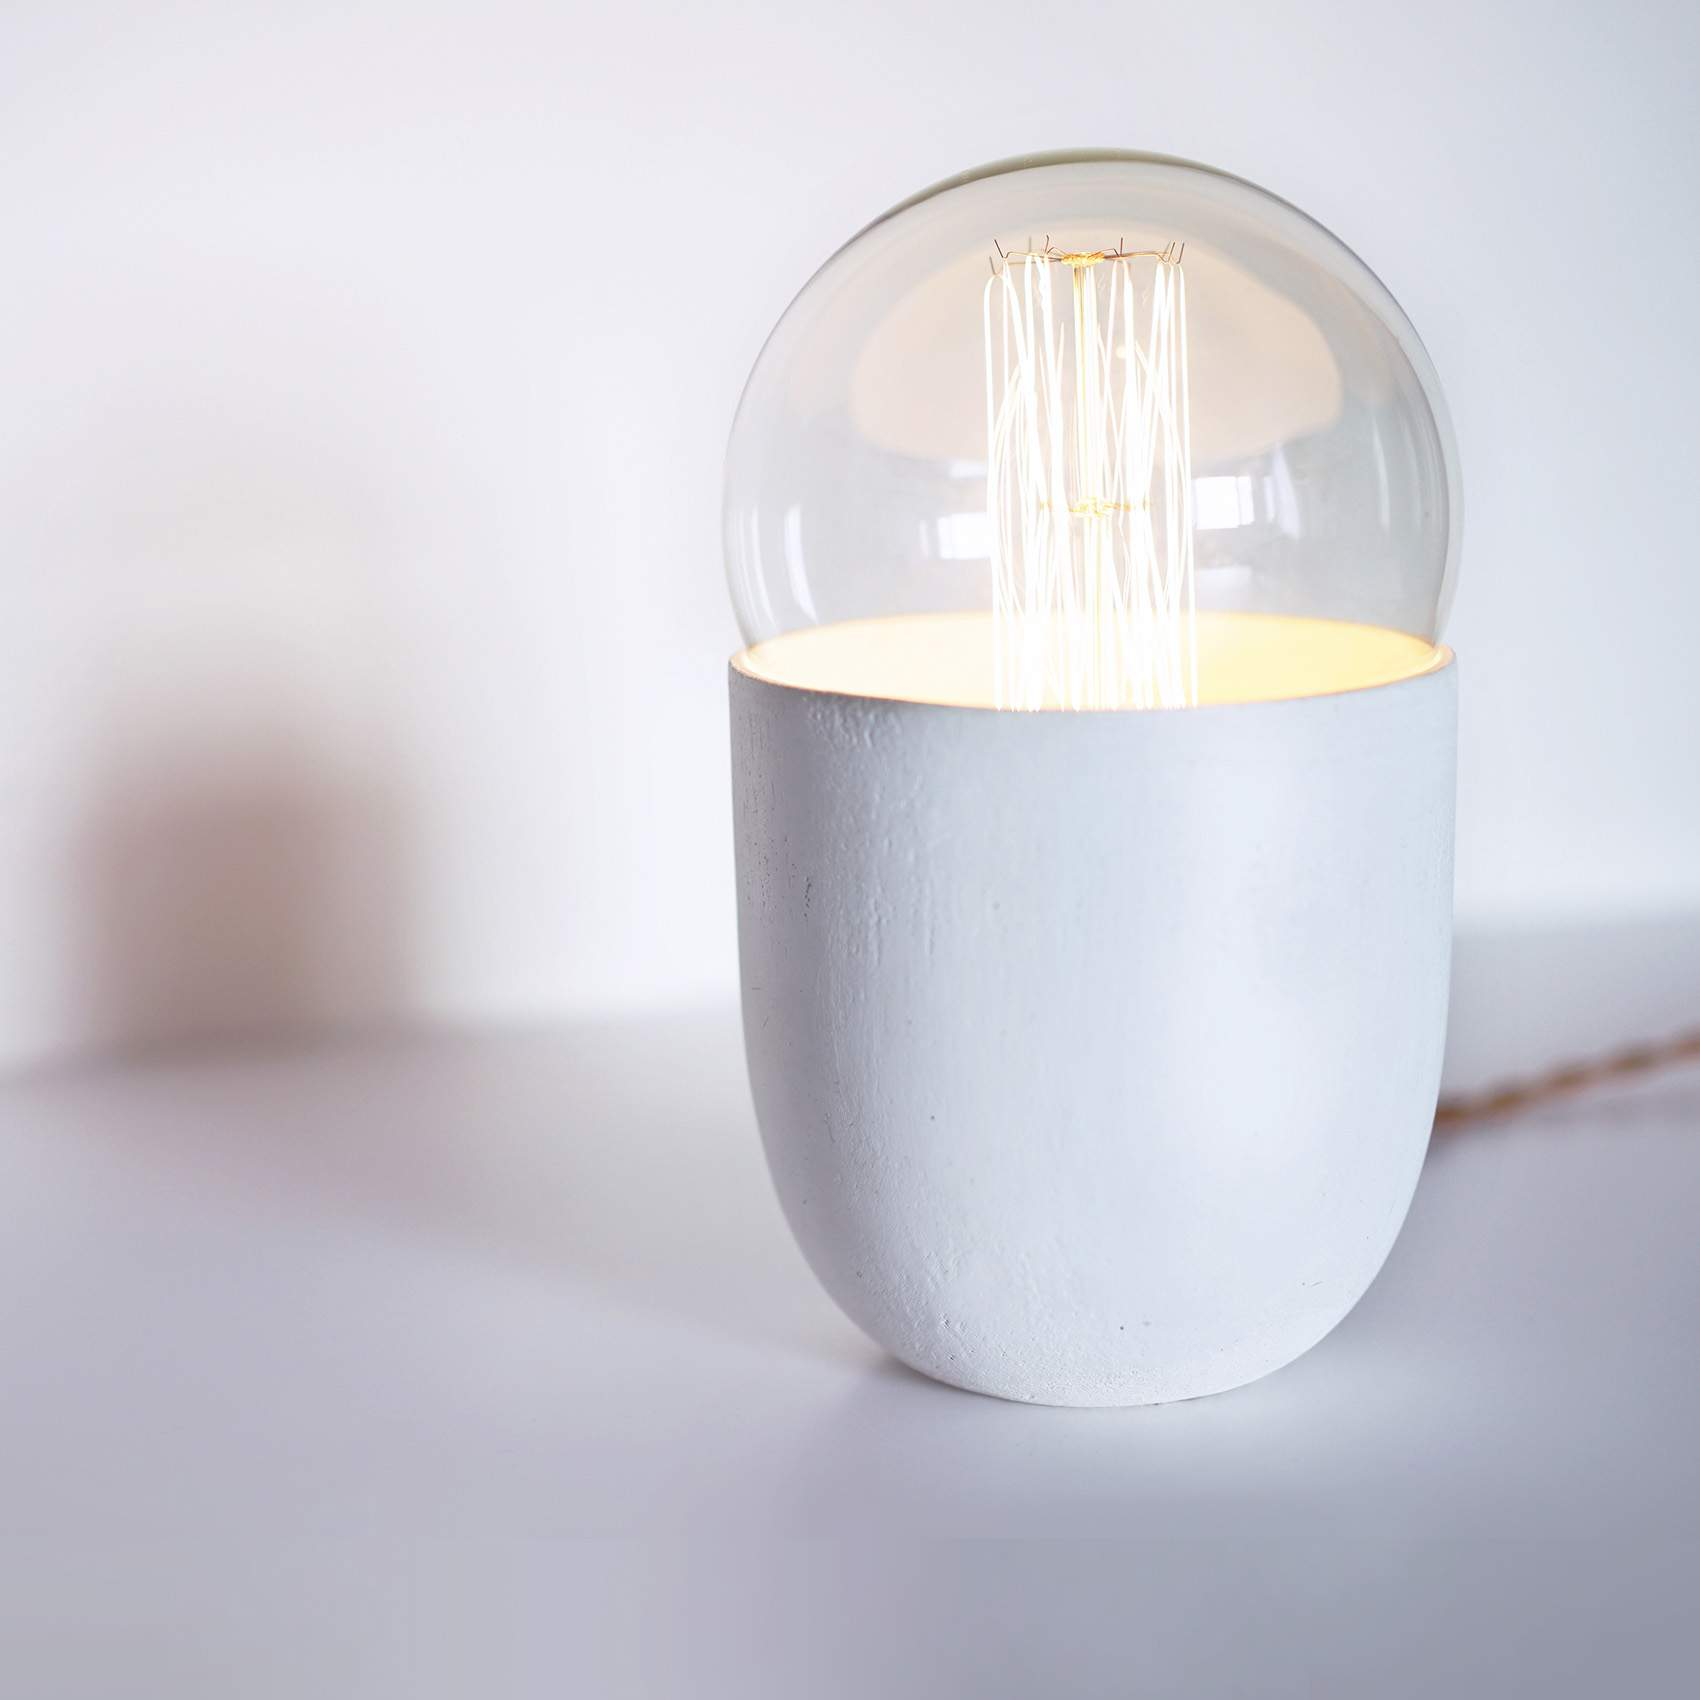 blog-design-jo-yana-koska-lamp_6